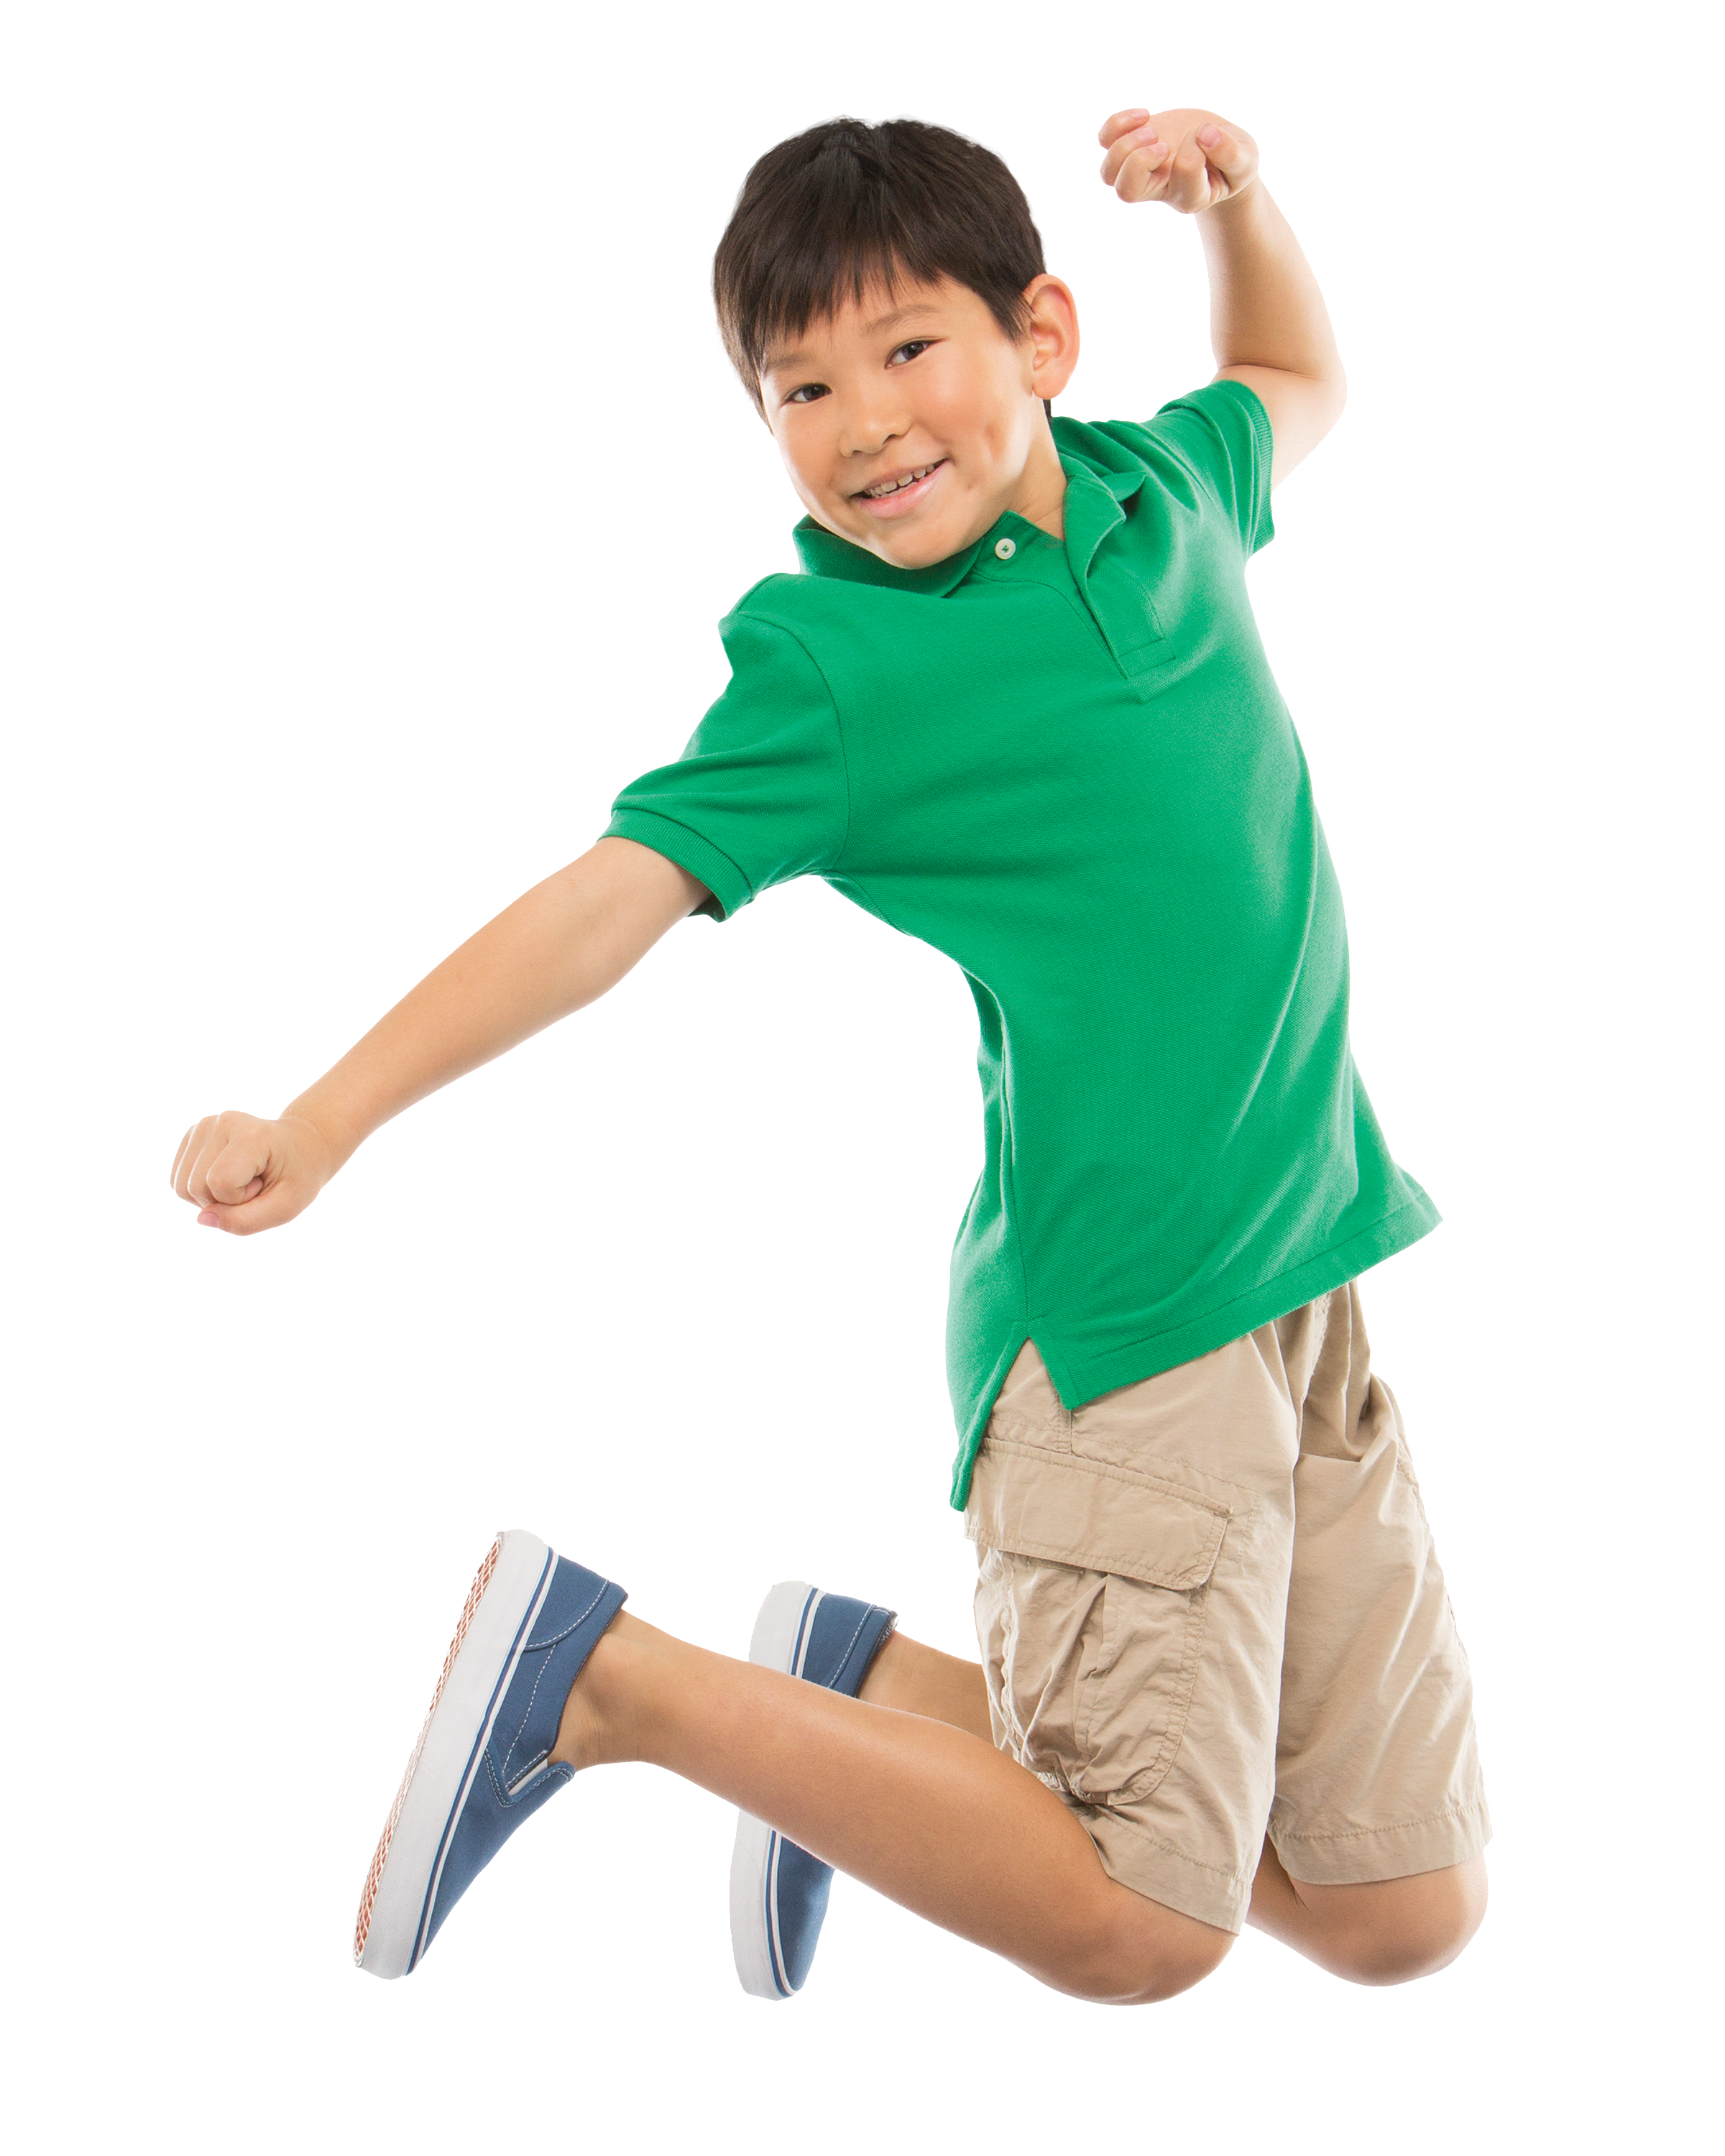 Kid's PNG Image.